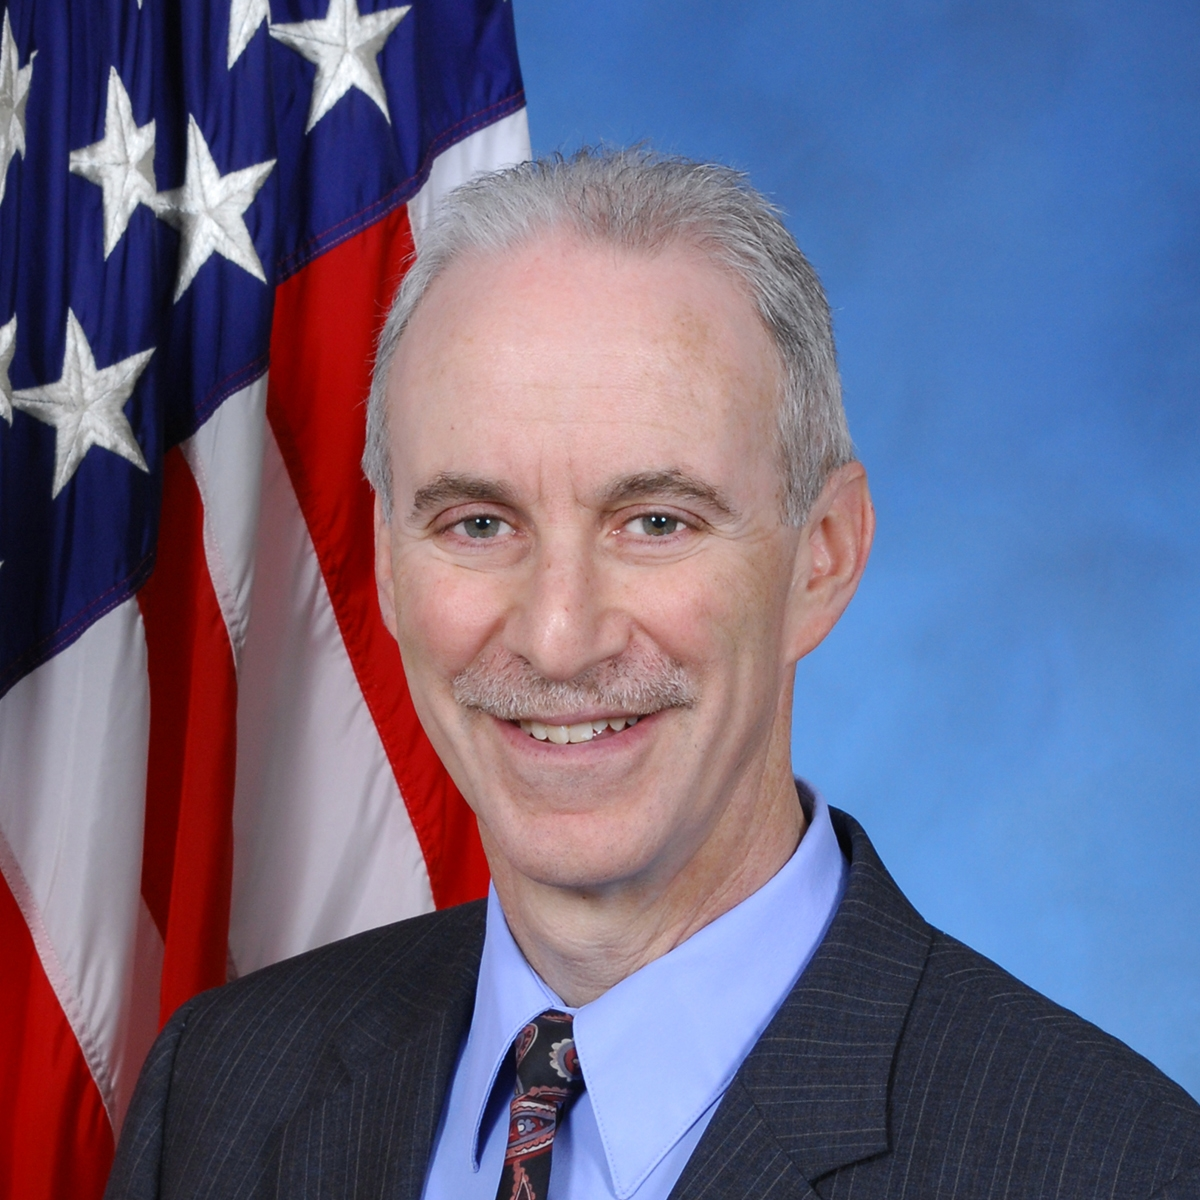 Mr. Wolkow serves as the Director of Academic Outreach for the National Security Agency (NSA). In this role he is responsible for promoting positive engagements with academic institutions – universities, colleges, K-12 schools, and State and local departments of education, with a focus on encouraging youth to pursue careers in Science, Technology, Engineering, and Math (STEM), cyber, and world languages He has held leadership roles with local and State PTAs, the Harford County Board of Education, and the Maryland Association of Boards of Education. He served on the Harford Board for nine years, three of which as President, overseeing a school system of 38,000 students. Mr. Wolkow began his career at Sweetheart Cup Corporation in Owings Mills, MD, where he worked for five years in production planning and systems development. He was with USF&G Insurance in Baltimore for the following eight year, primarily managing a software development area. Prior to his current position, Mark spent 18 years in federal finance. He served for eleven years at the U.S. Department of Labor before joining NSA in 2003. He holds a Bachelor's Degree in Mathematical Science from the Johns Hopkins University, an MBA in Finance from Loyola College, and is a 1994 graduate of the Harford Leadership Academy.